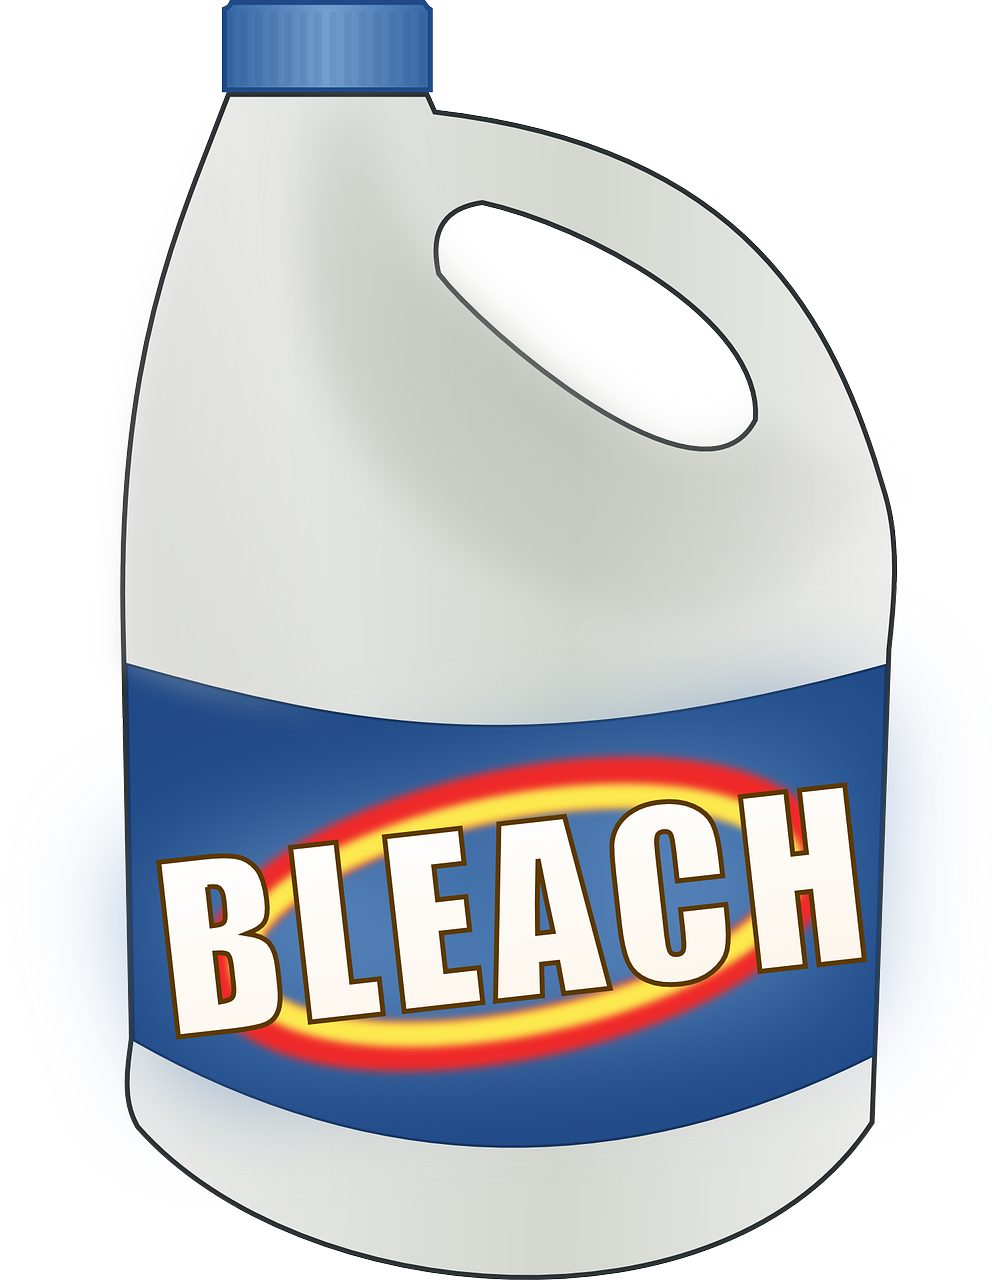 Difference Between Acetone and Bleach